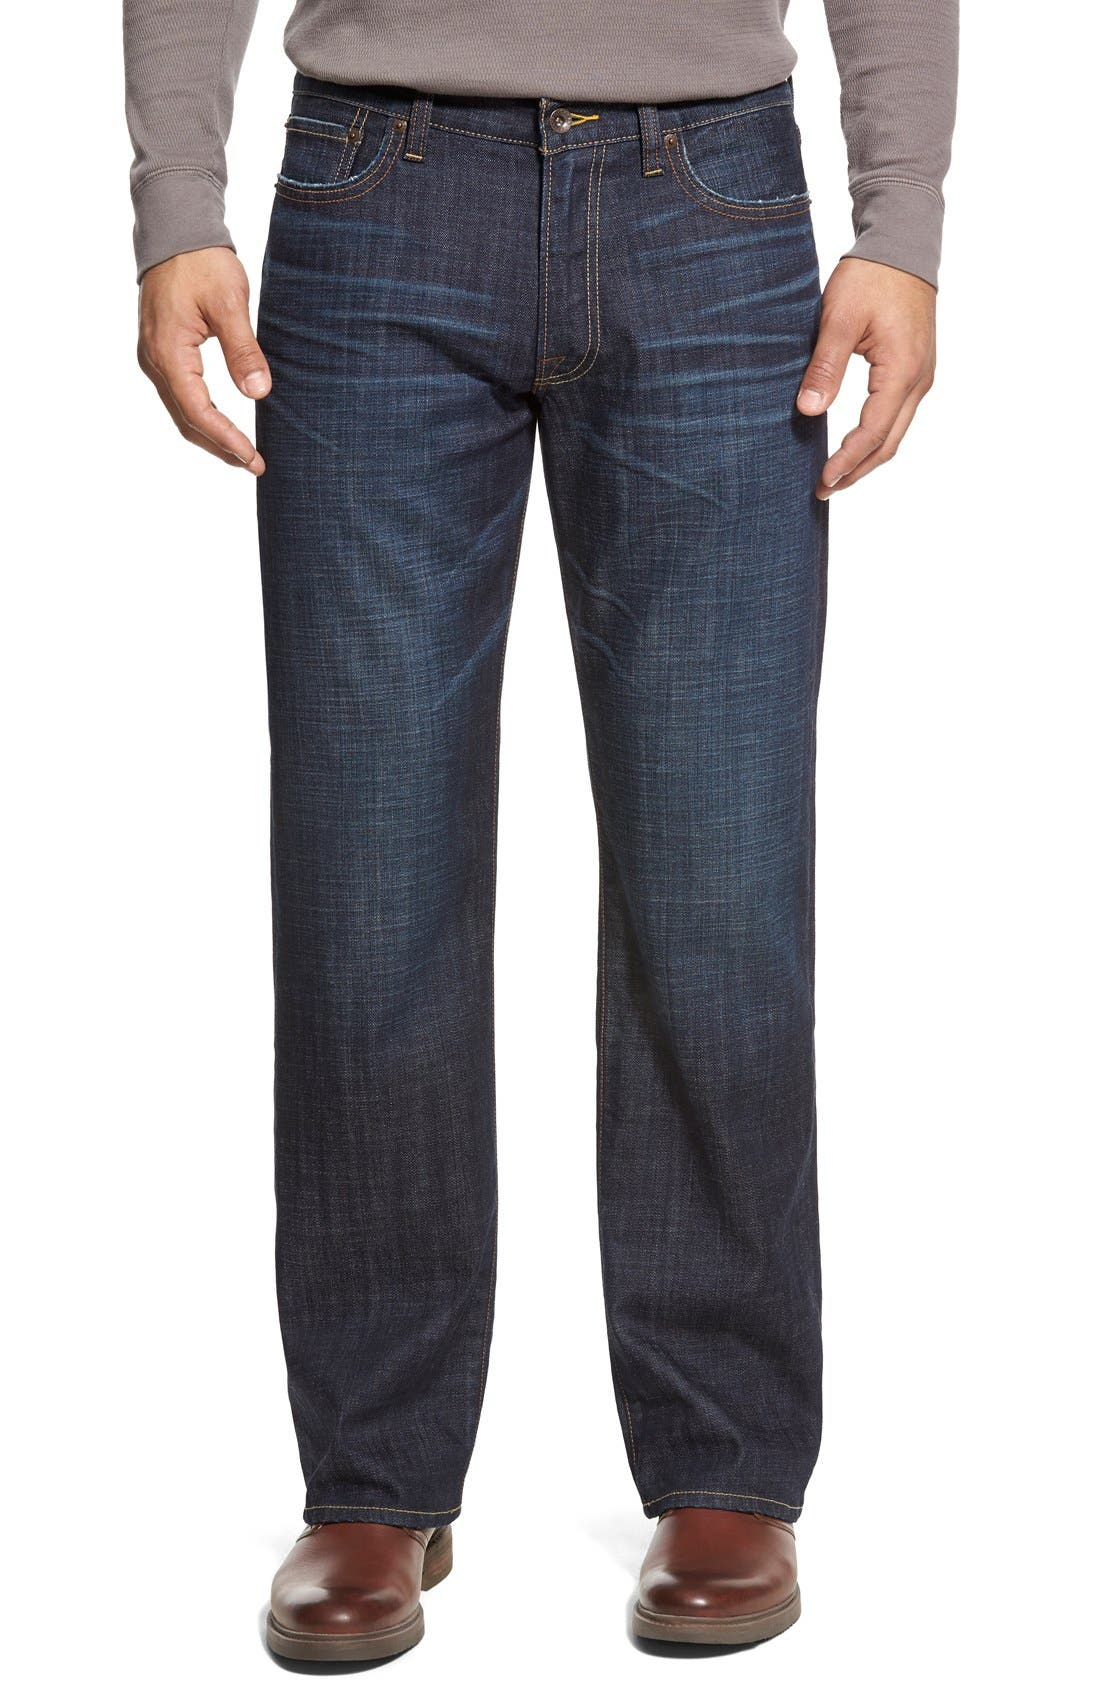 '361 Vintage' Straight Leg Jeans,                             Main thumbnail 1, color,                             410